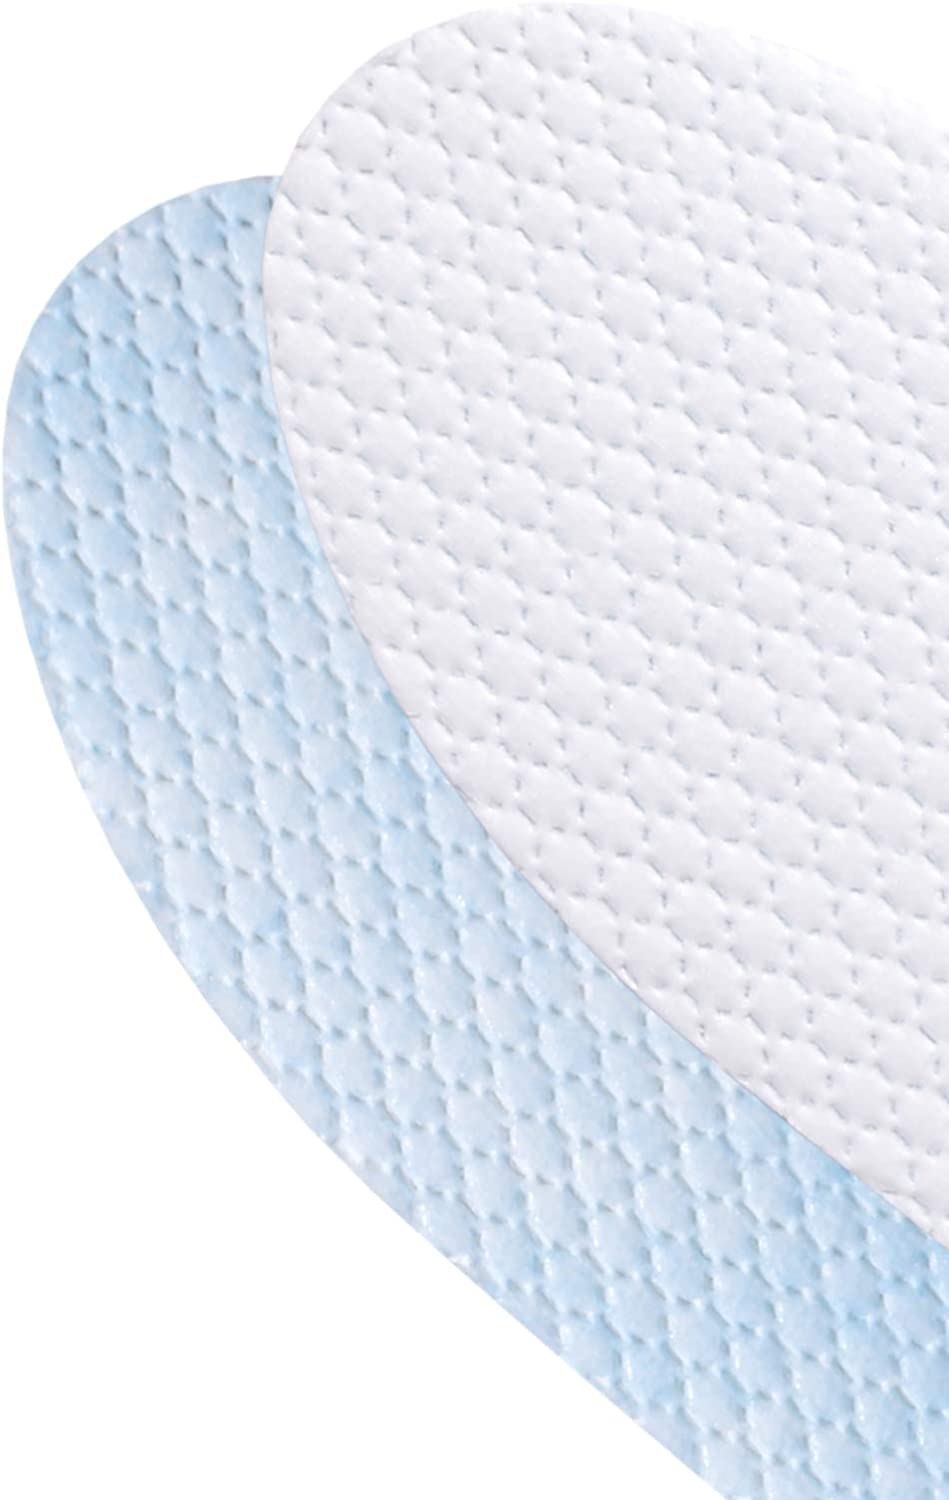 Ultra Fresh Deodorizing Shoe Insoles Inserts with Micro Capsules Kaps Fresh Step Dermatologically Tested 41-43 EUR // 7-9 M UK Odour Eating Shoe Soles 3 Pair Pack No Allergens Made in Europe